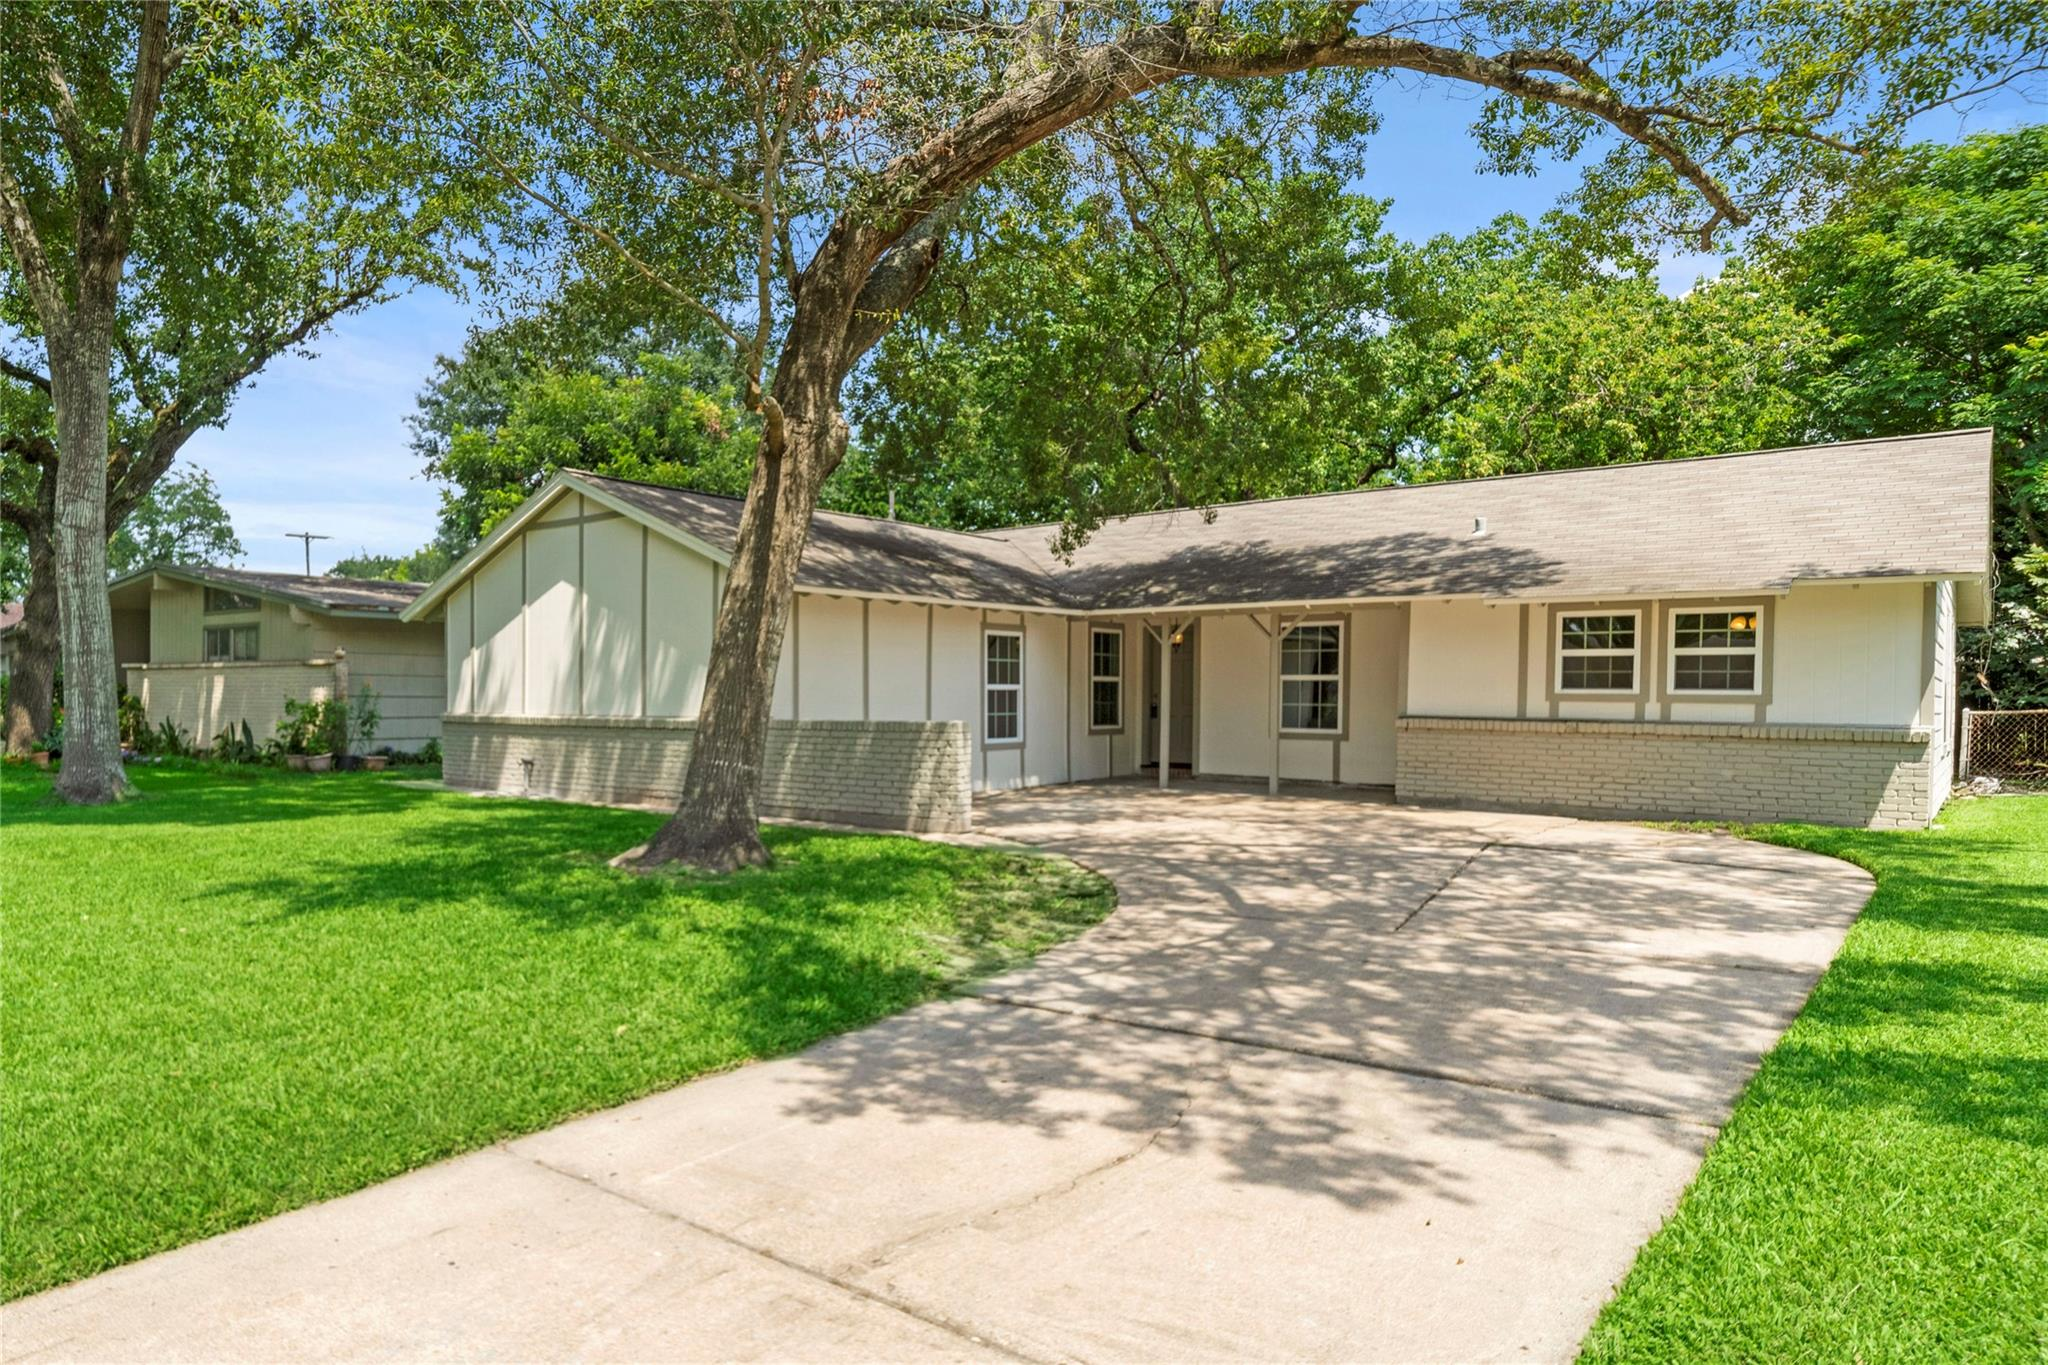 7034 Hazen Street Property Photo - Houston, TX real estate listing